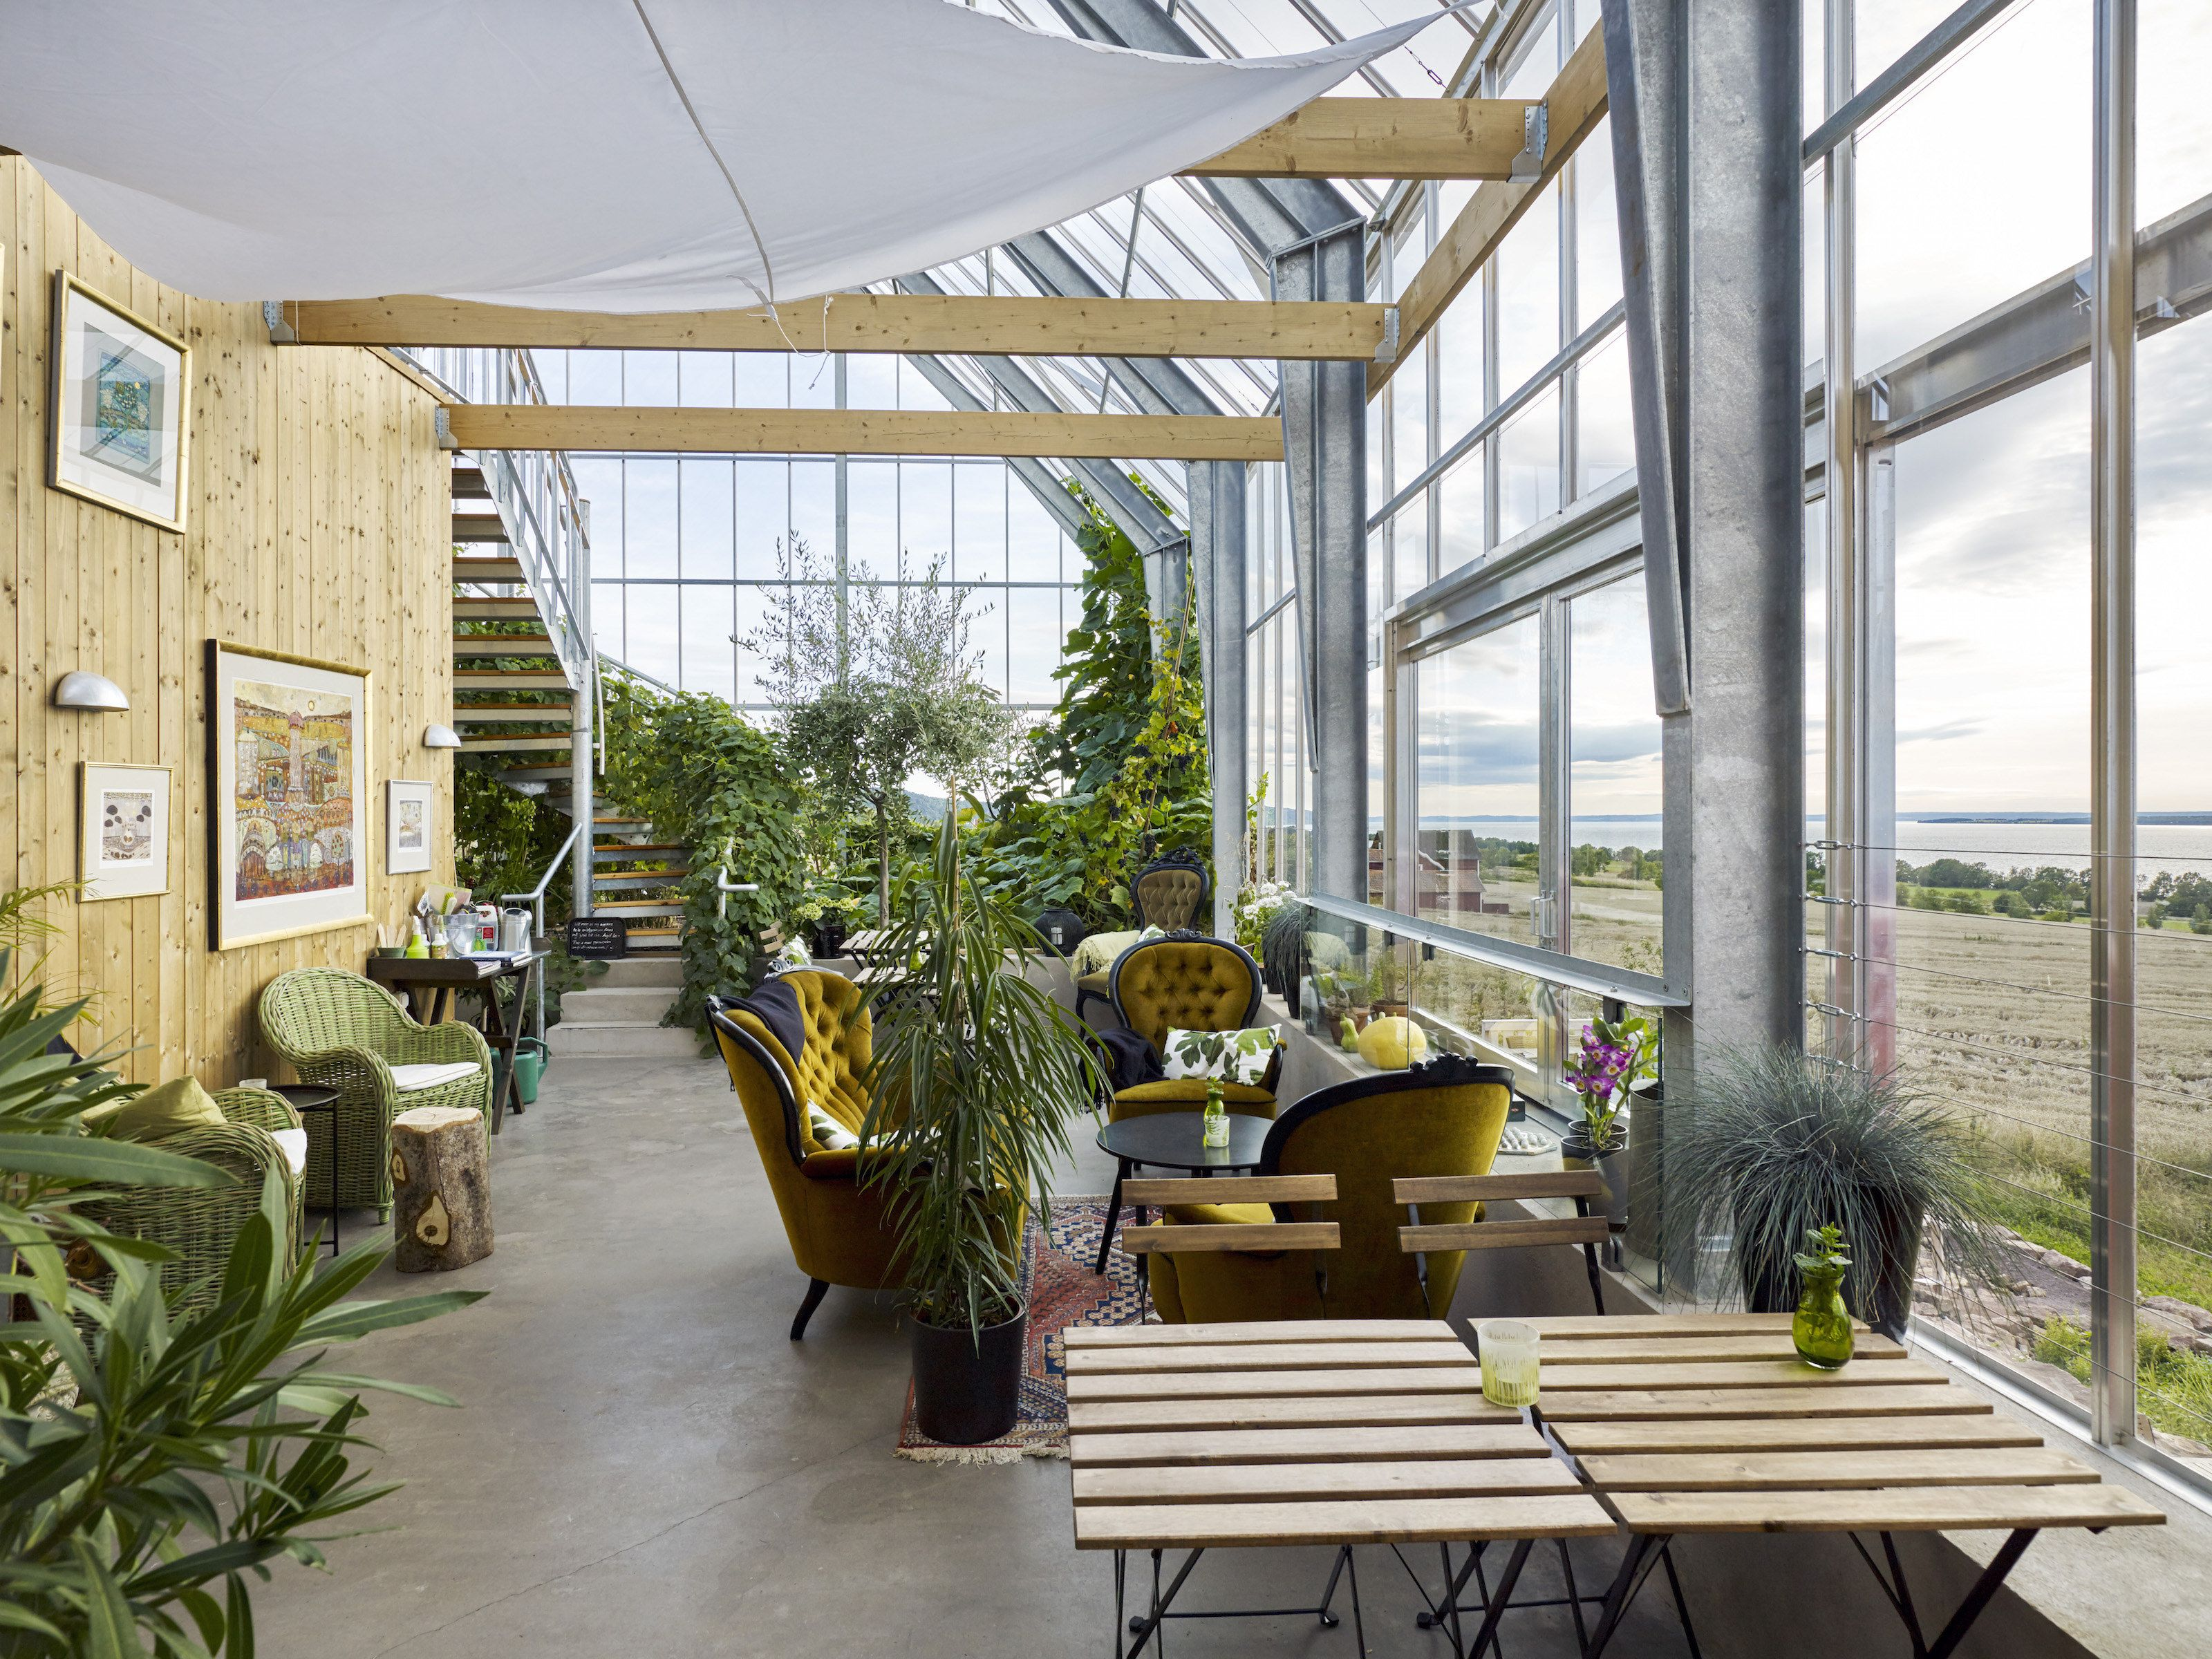 Roof Design Ideas: You'll Want To Live In One Of These Eco-Friendly Swedish